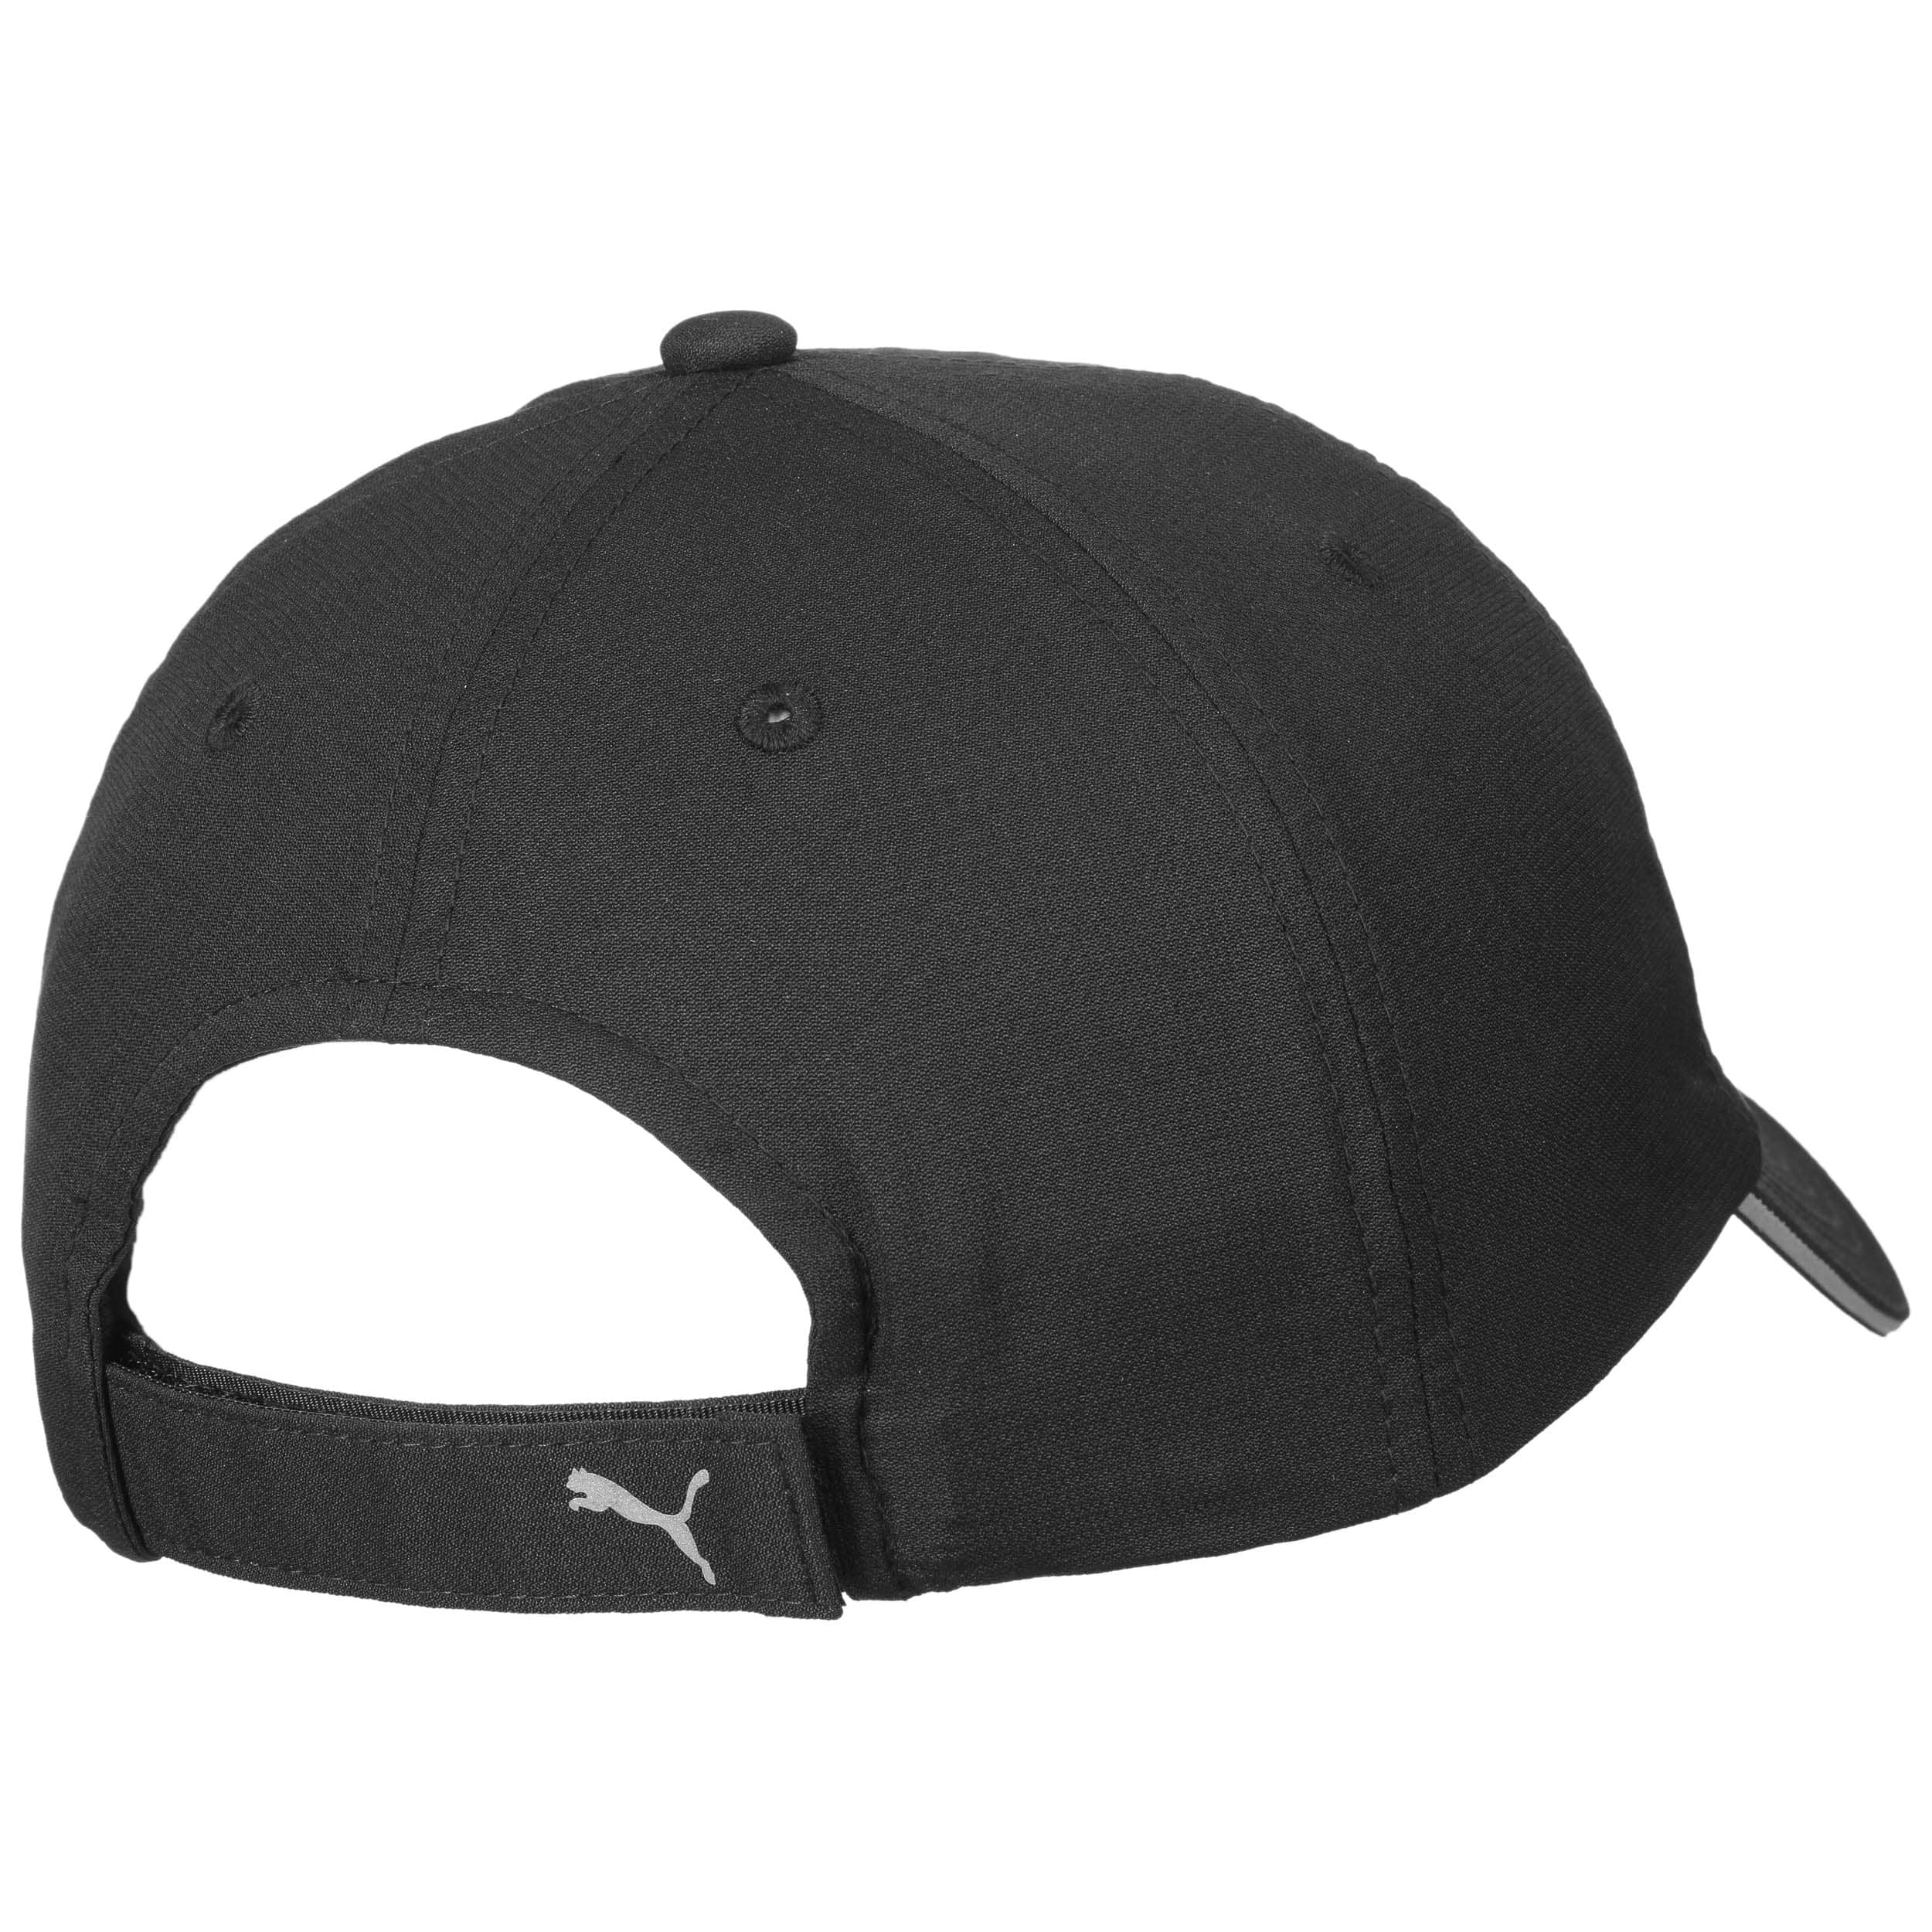 best sneakers 34cef 8d5e7 ... Performance Running Cap III by PUMA - black 3 ...